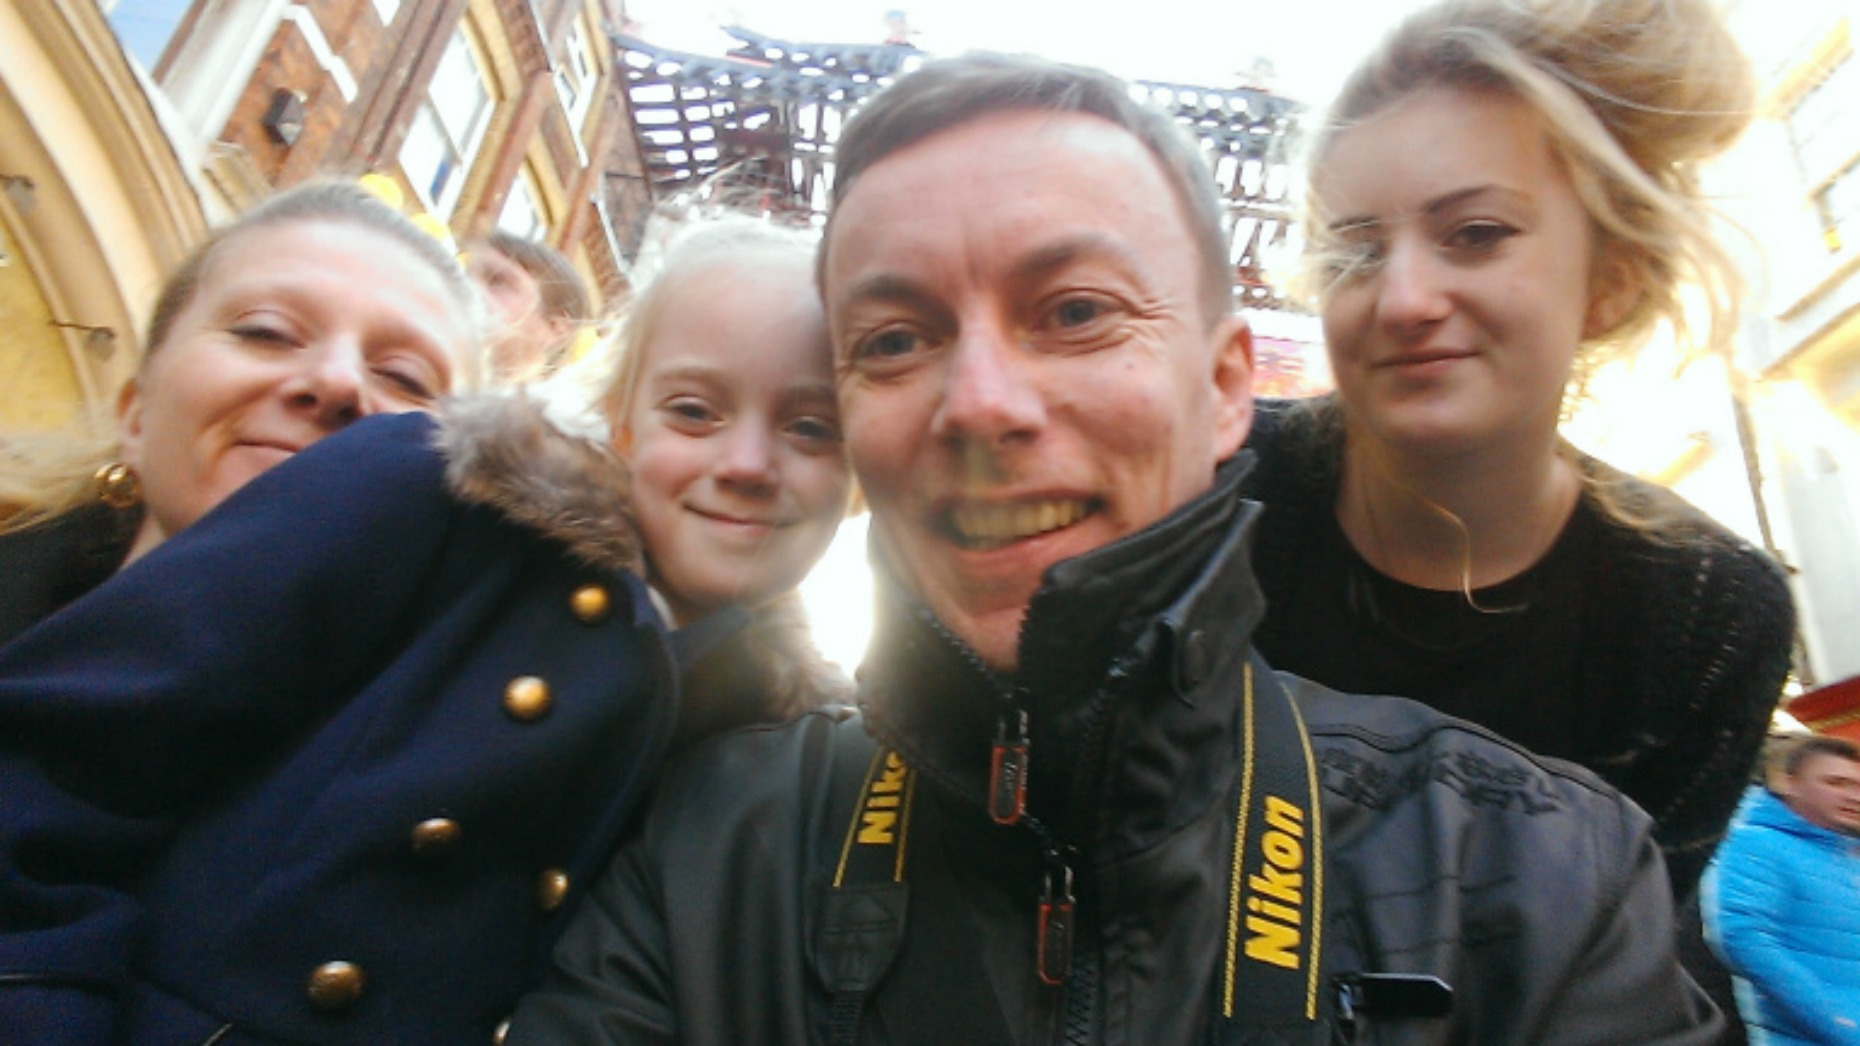 Paul lives in Lincoln with his wife, George and daughters Annie and Emily. Photo: Paul Crowdey Blog